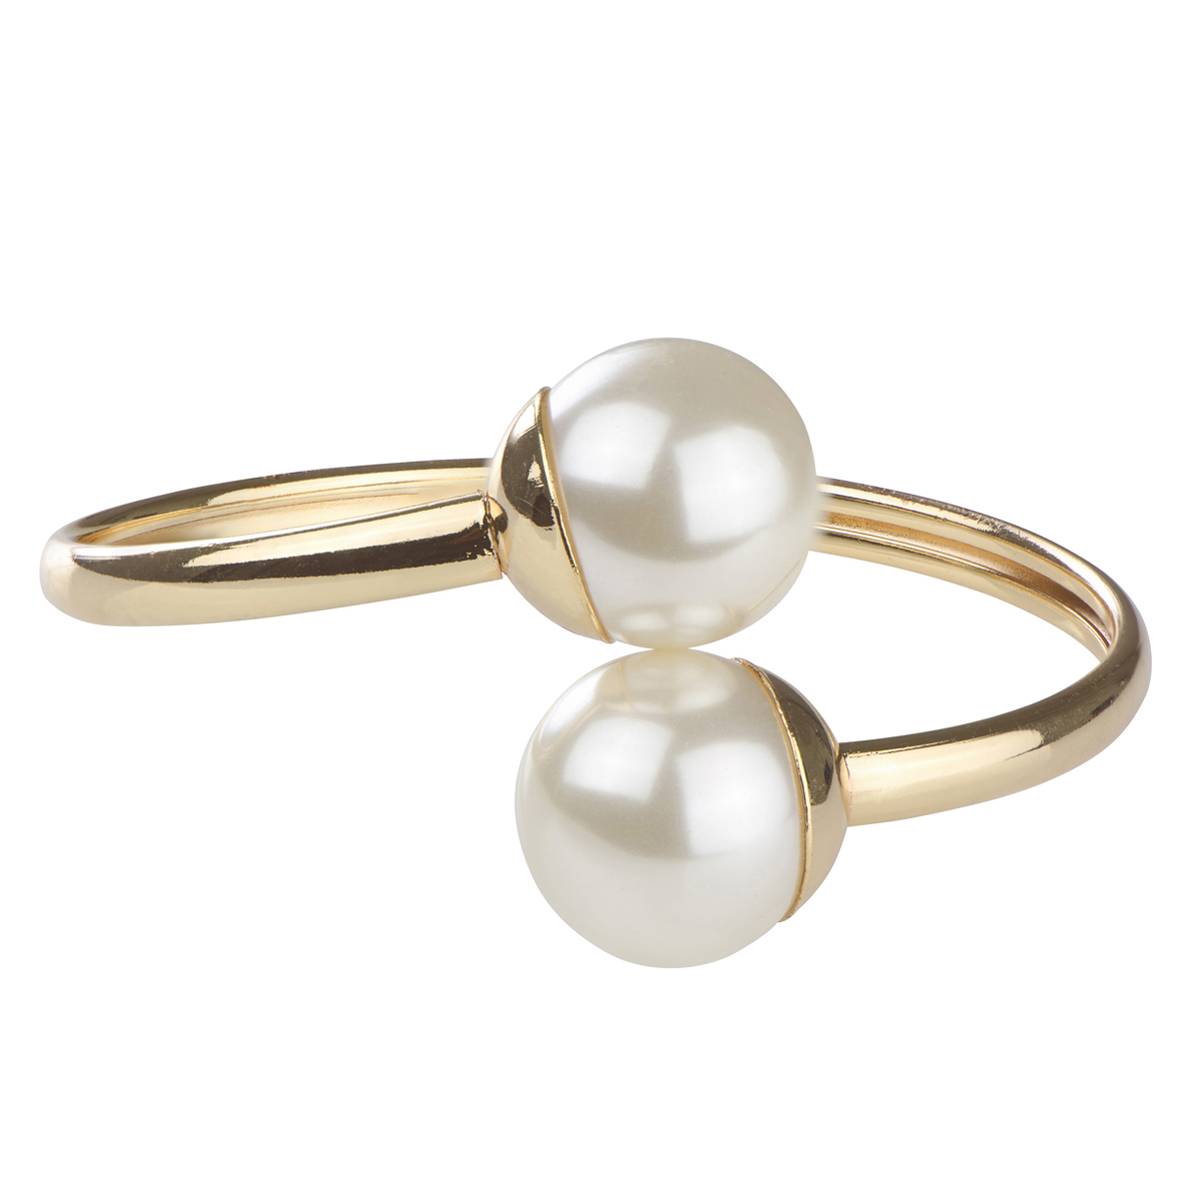 Tasi's Gold And Simulated Pearl Bangle Bracelet Roll Off Image To Close  Zoom Window